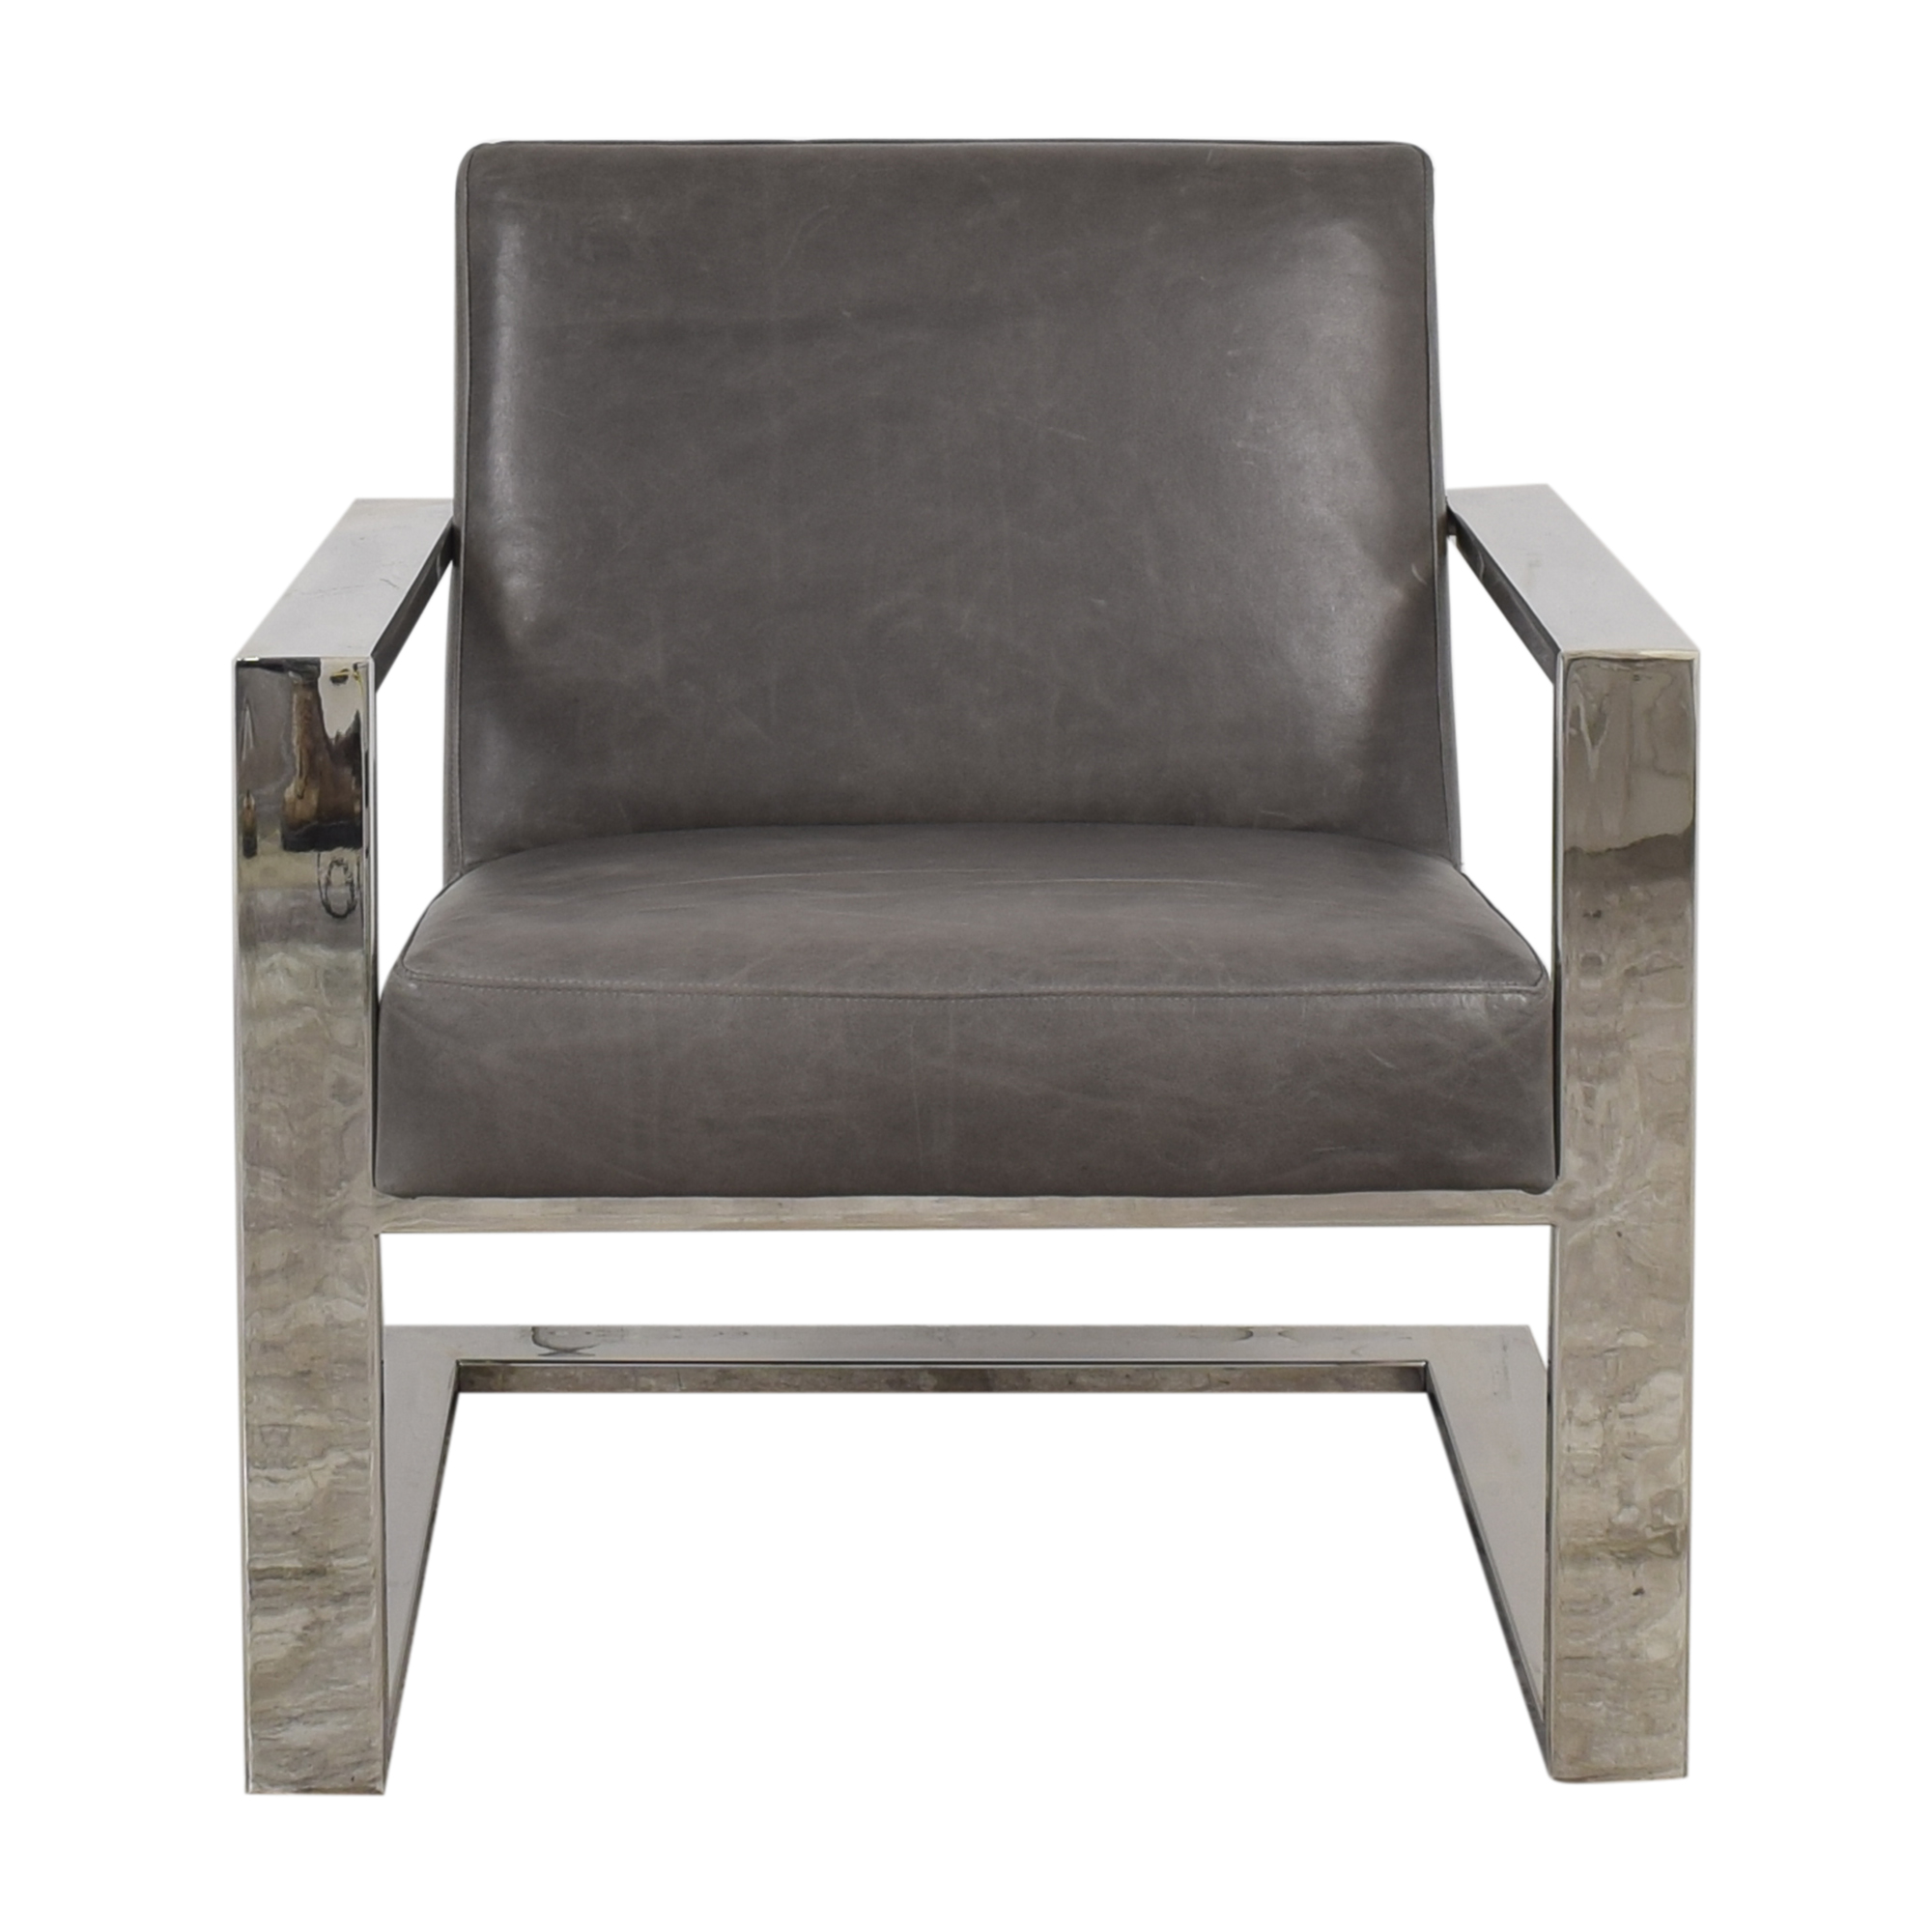 shop Williams Sonoma Williams Sonoma Brookline Chair online